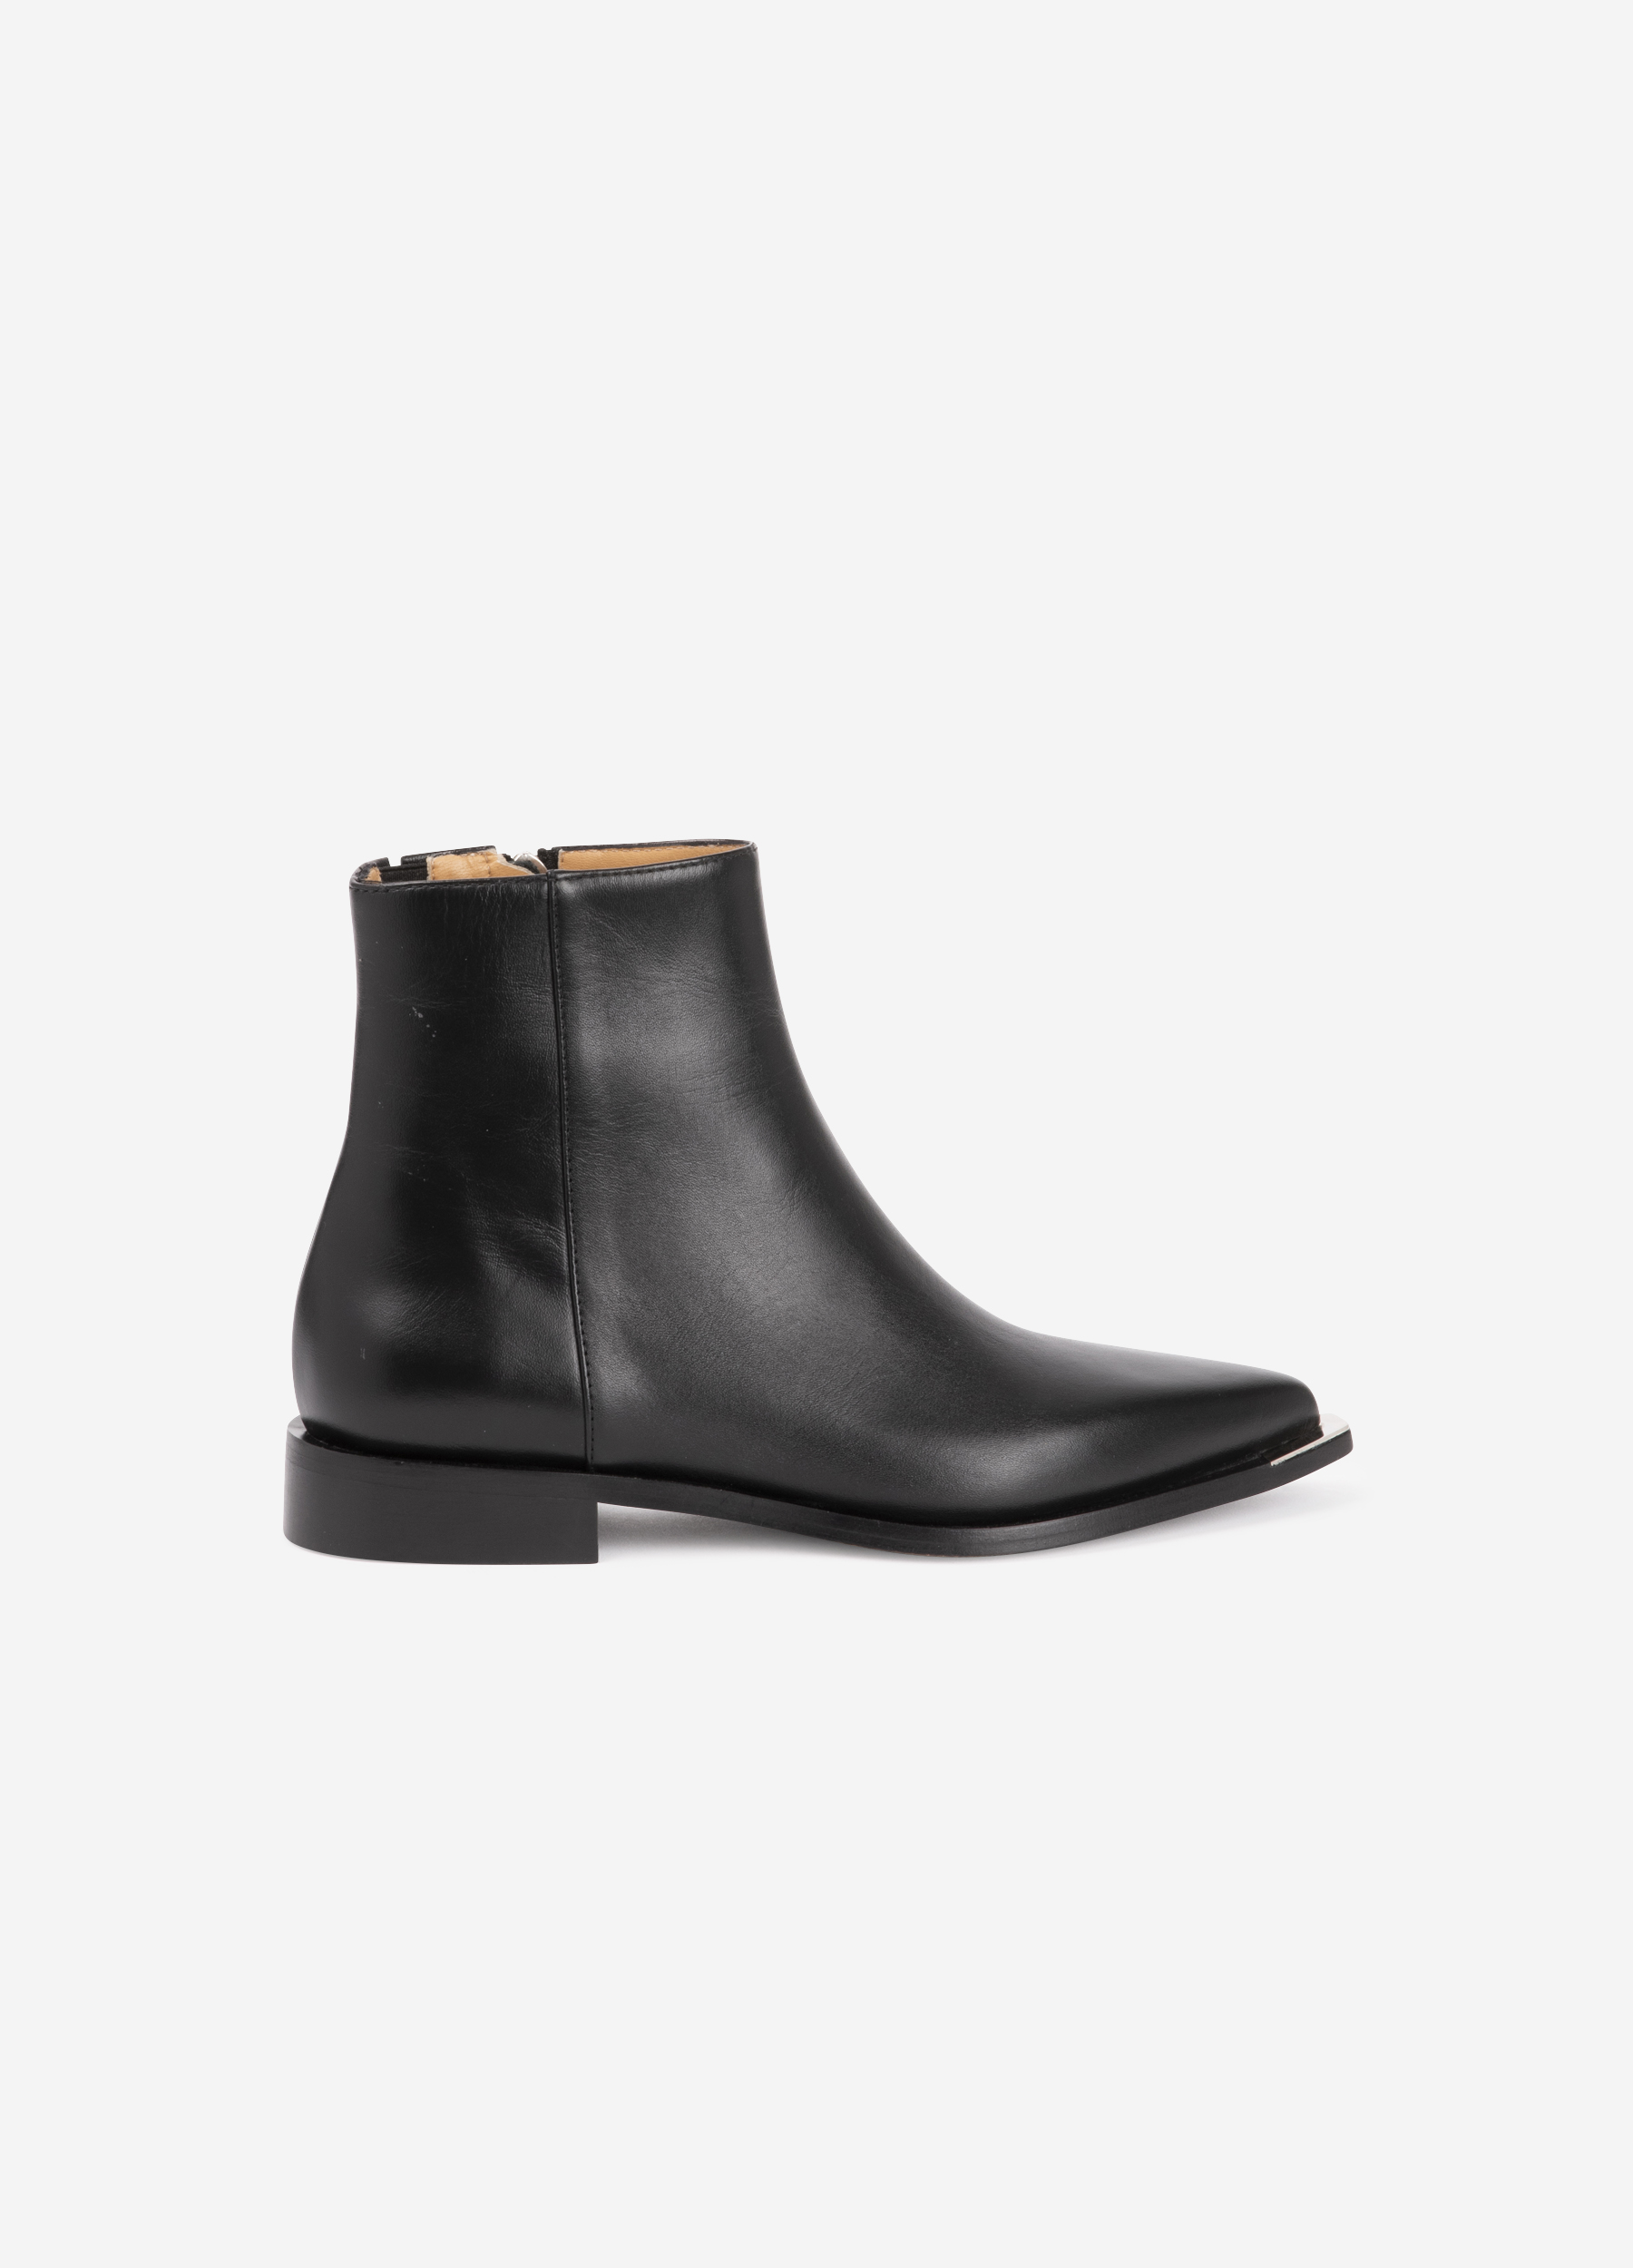 Pointed toe leather low-boots | Barbara Bui